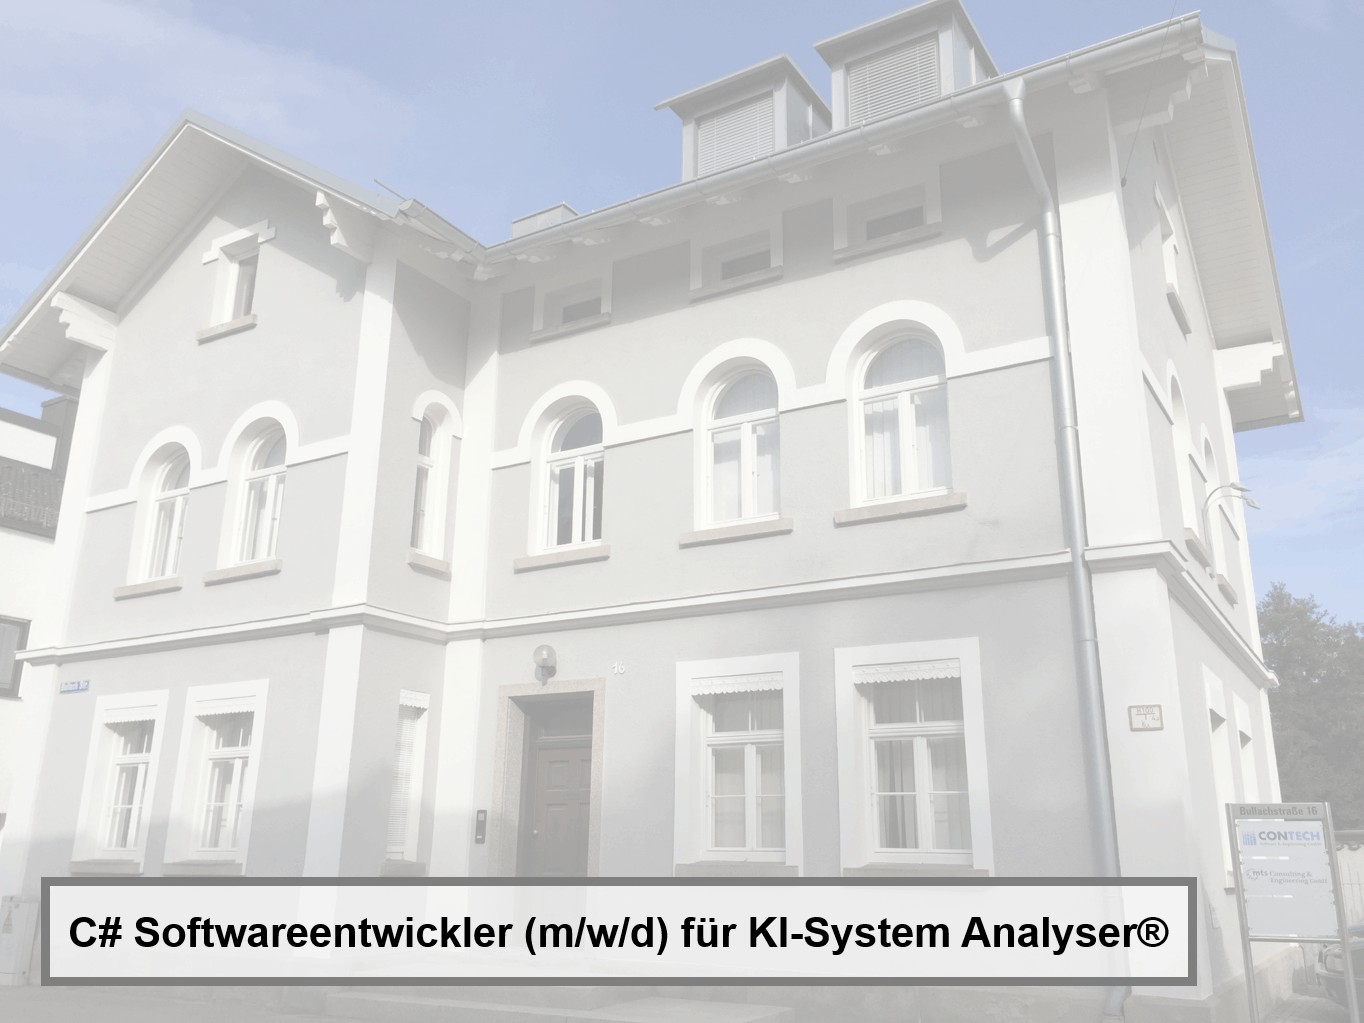 C# Softwareentwickler (m/w/d) für KI-System Analyser®